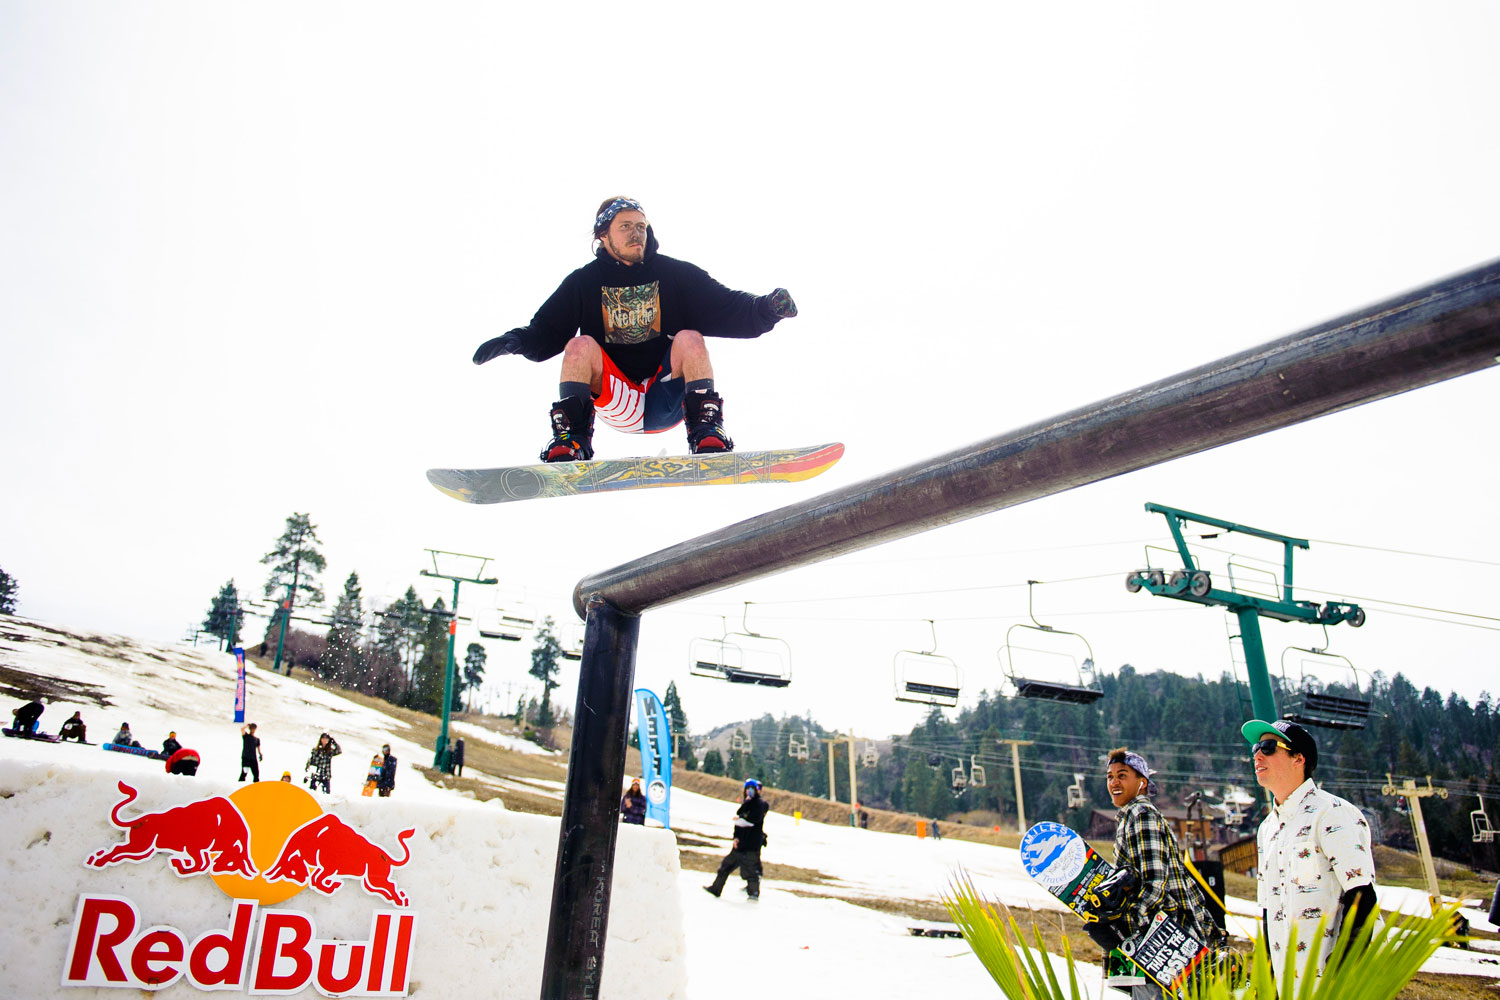 A participant takes off from one of the many jumps created for the Red Bull Switchboard event.